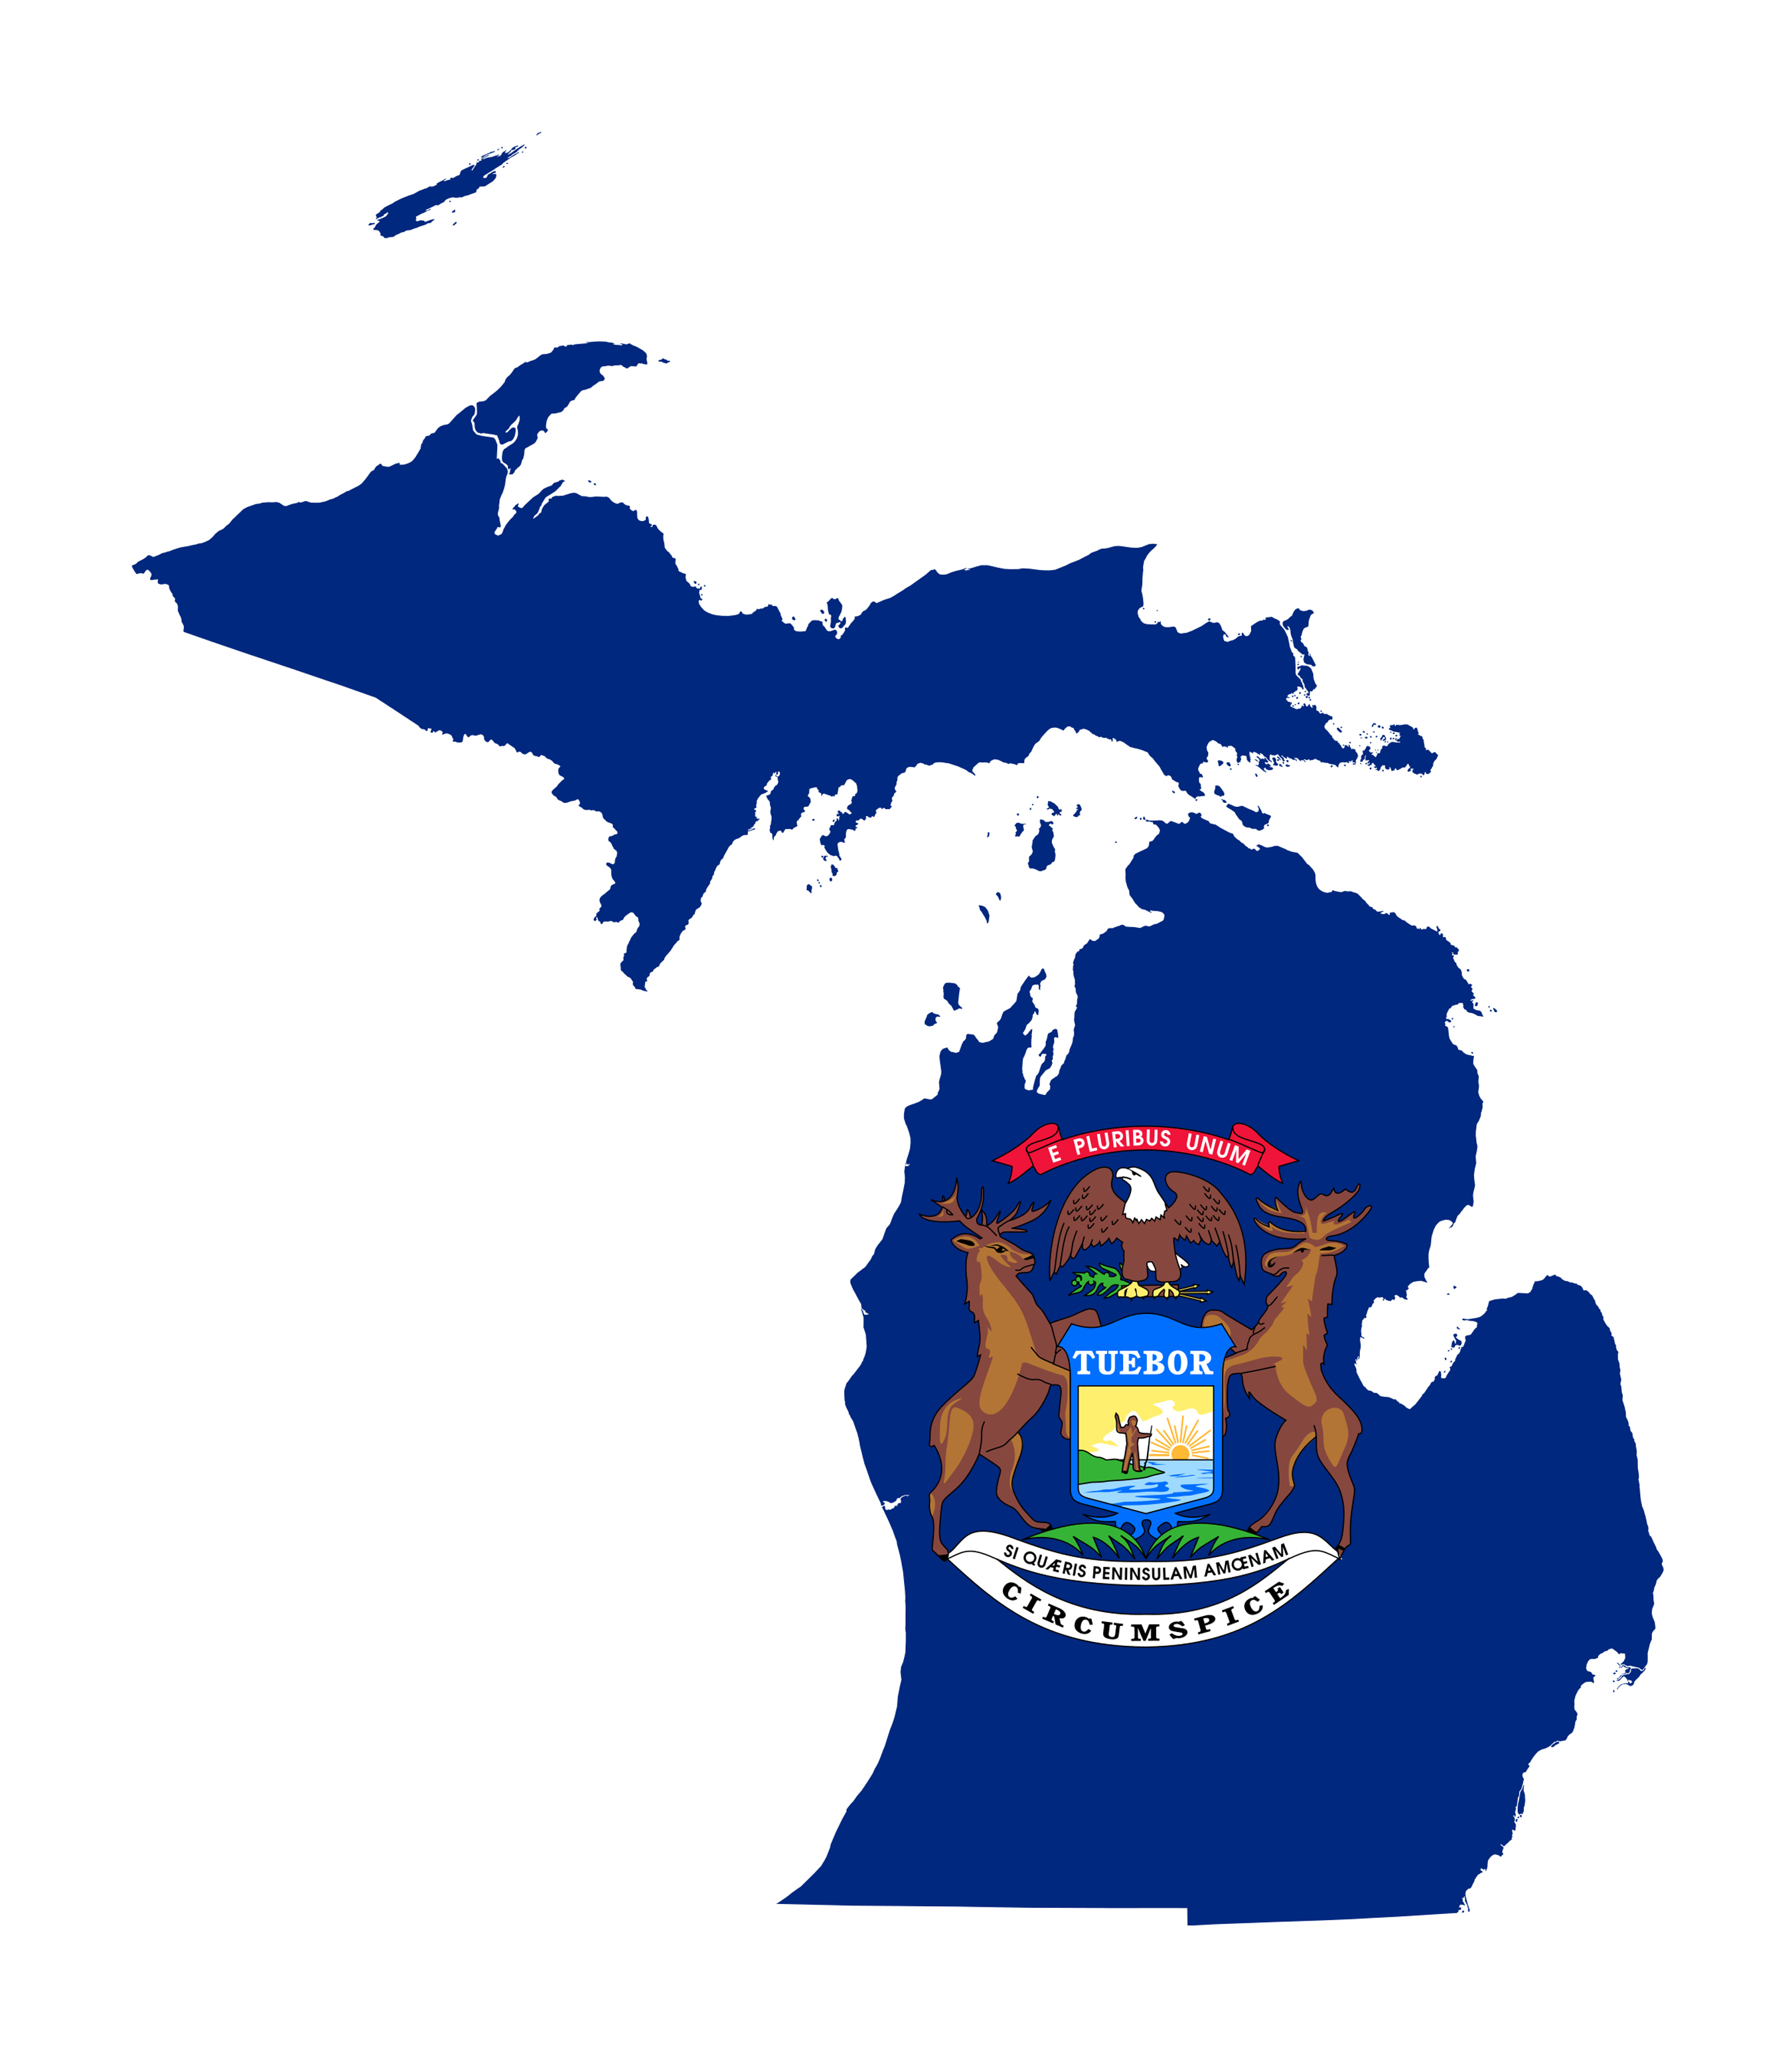 Michigan Architect Continuing Education Requirements